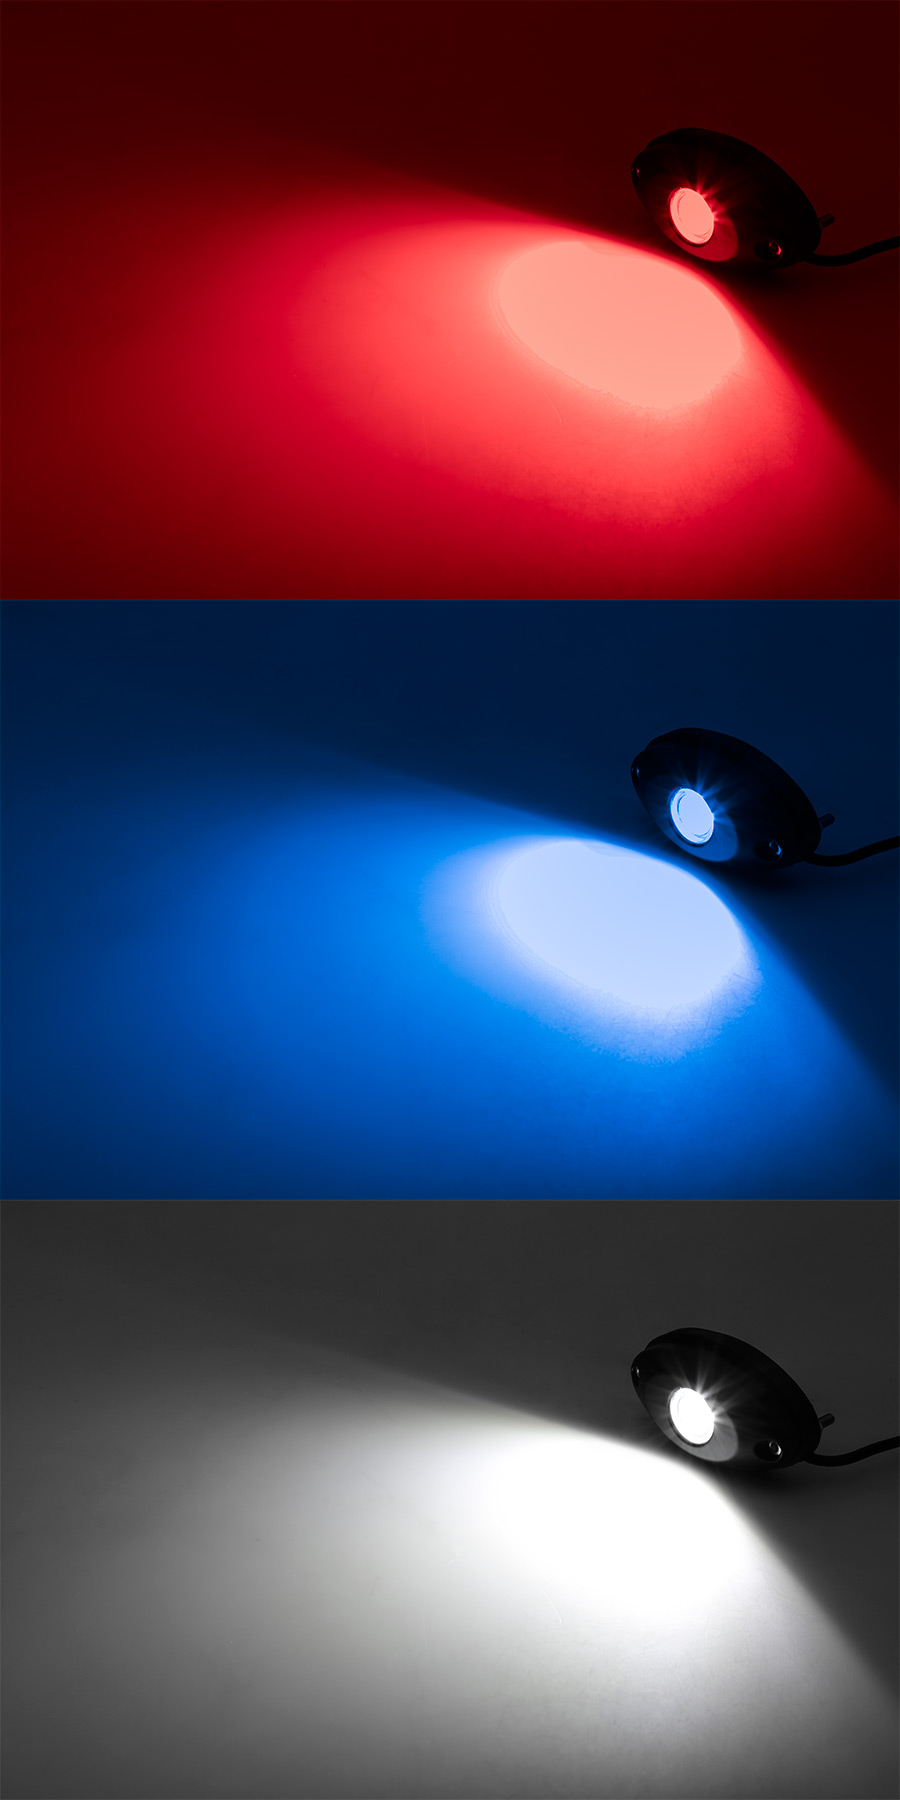 Waterproof Off Road LED Rock Light Replacement Module: On Showing Beam  Pattern In Red, Blue, And White.